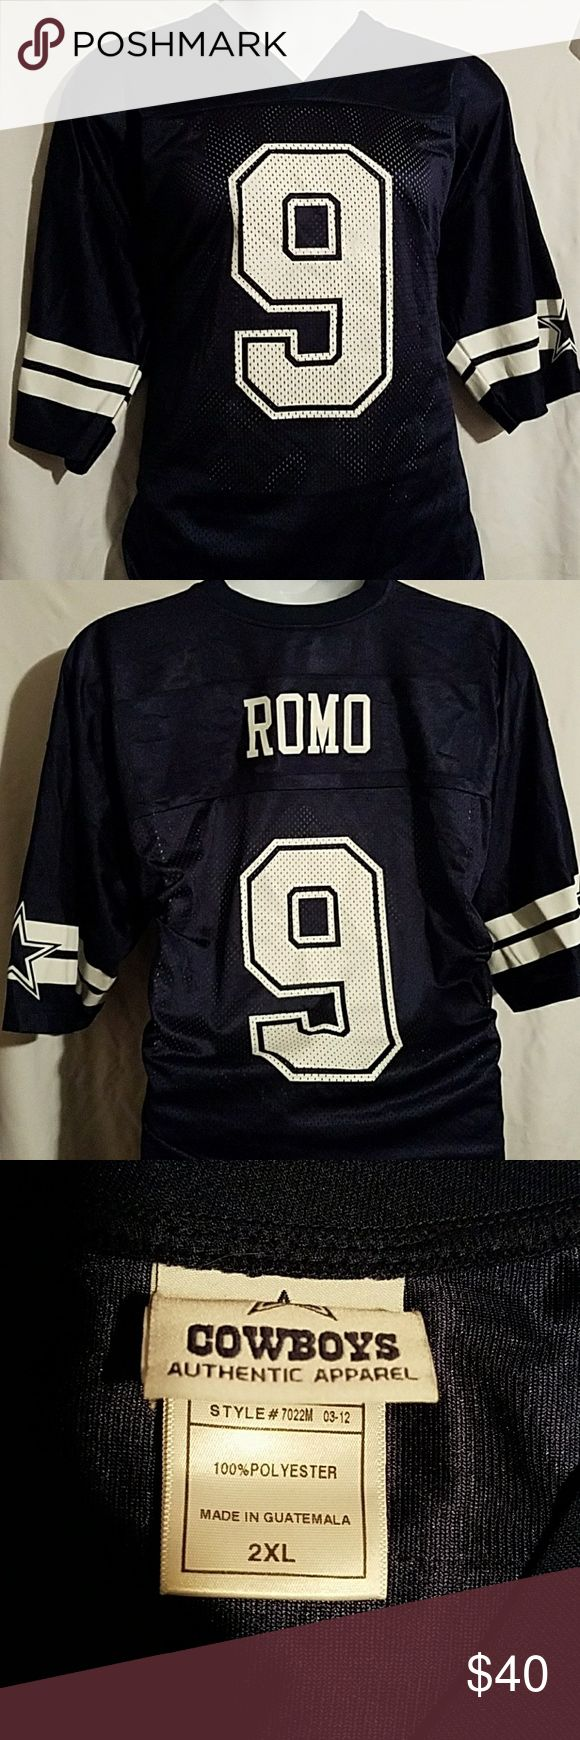 Authentic plus size Romo jersey 2xl Dallas cowboys Room jersey front has #9 back has #9 and Room purchased from Dallas cowboys shop dallas cowboys Tops Muscle Tees